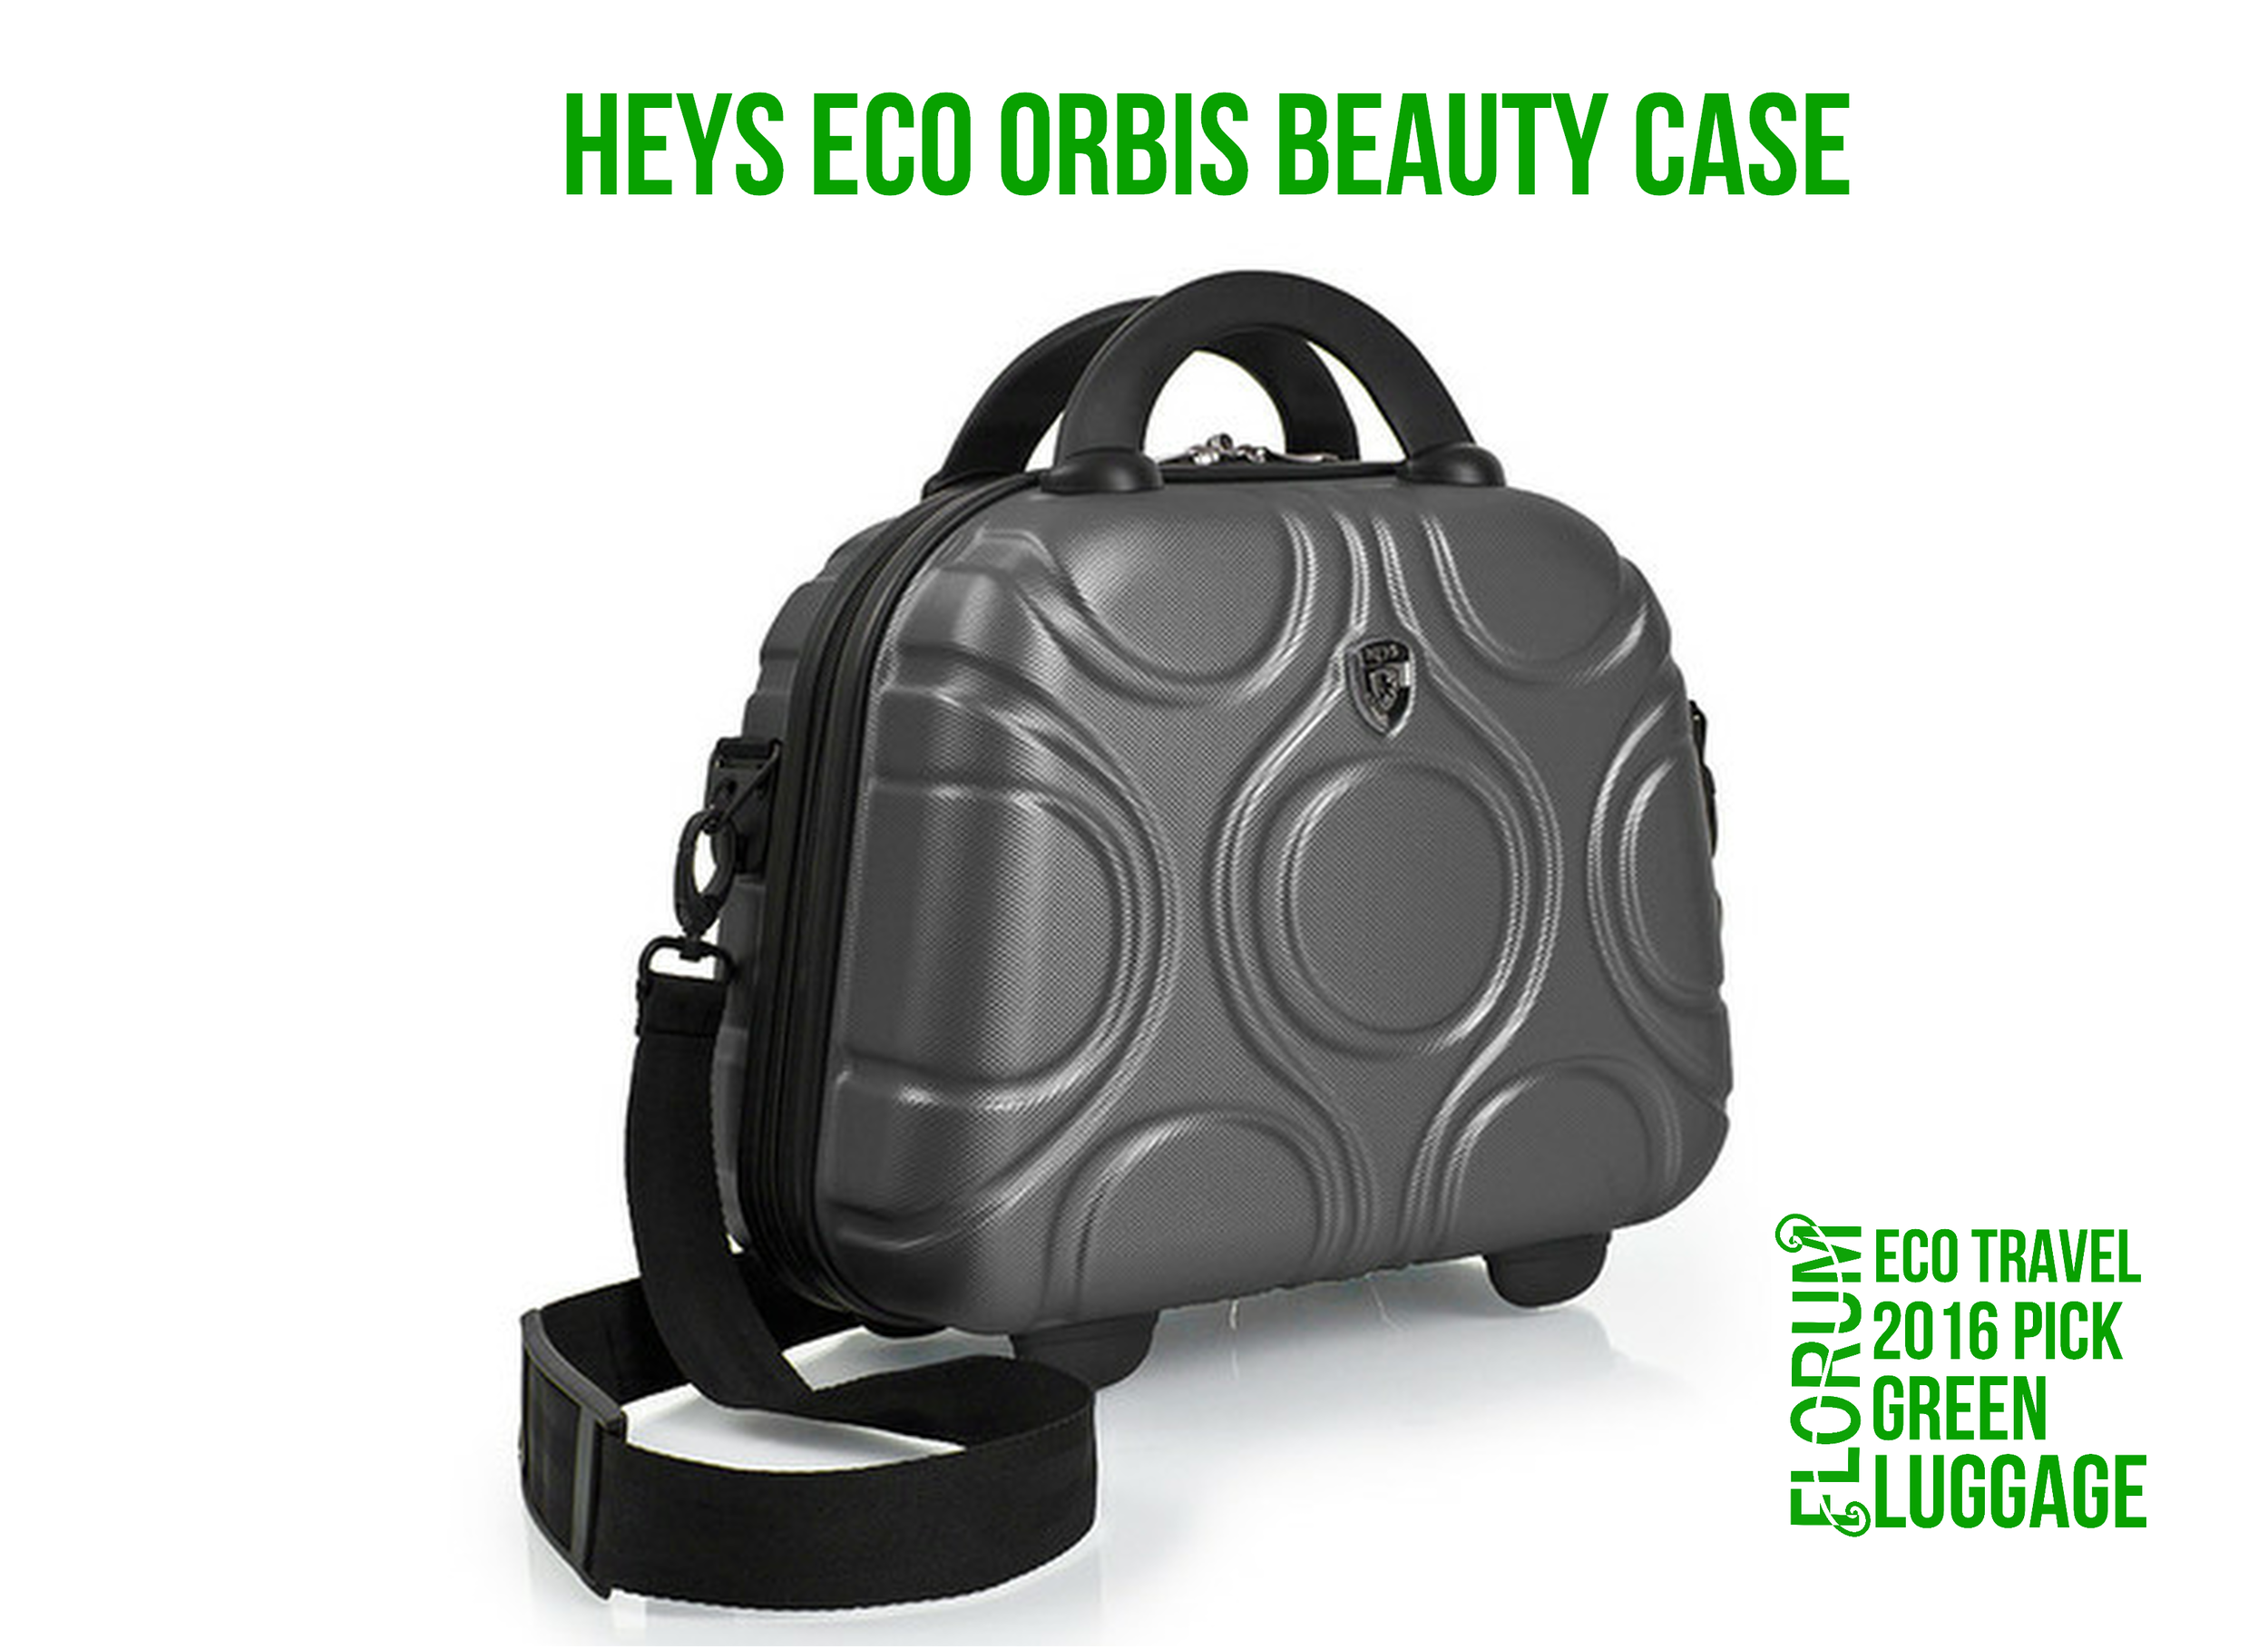 Florum Eco Travel 2016 Green Luggage Pick - Hey Eco Orbis Beauty Case - Noelle Lynne.png